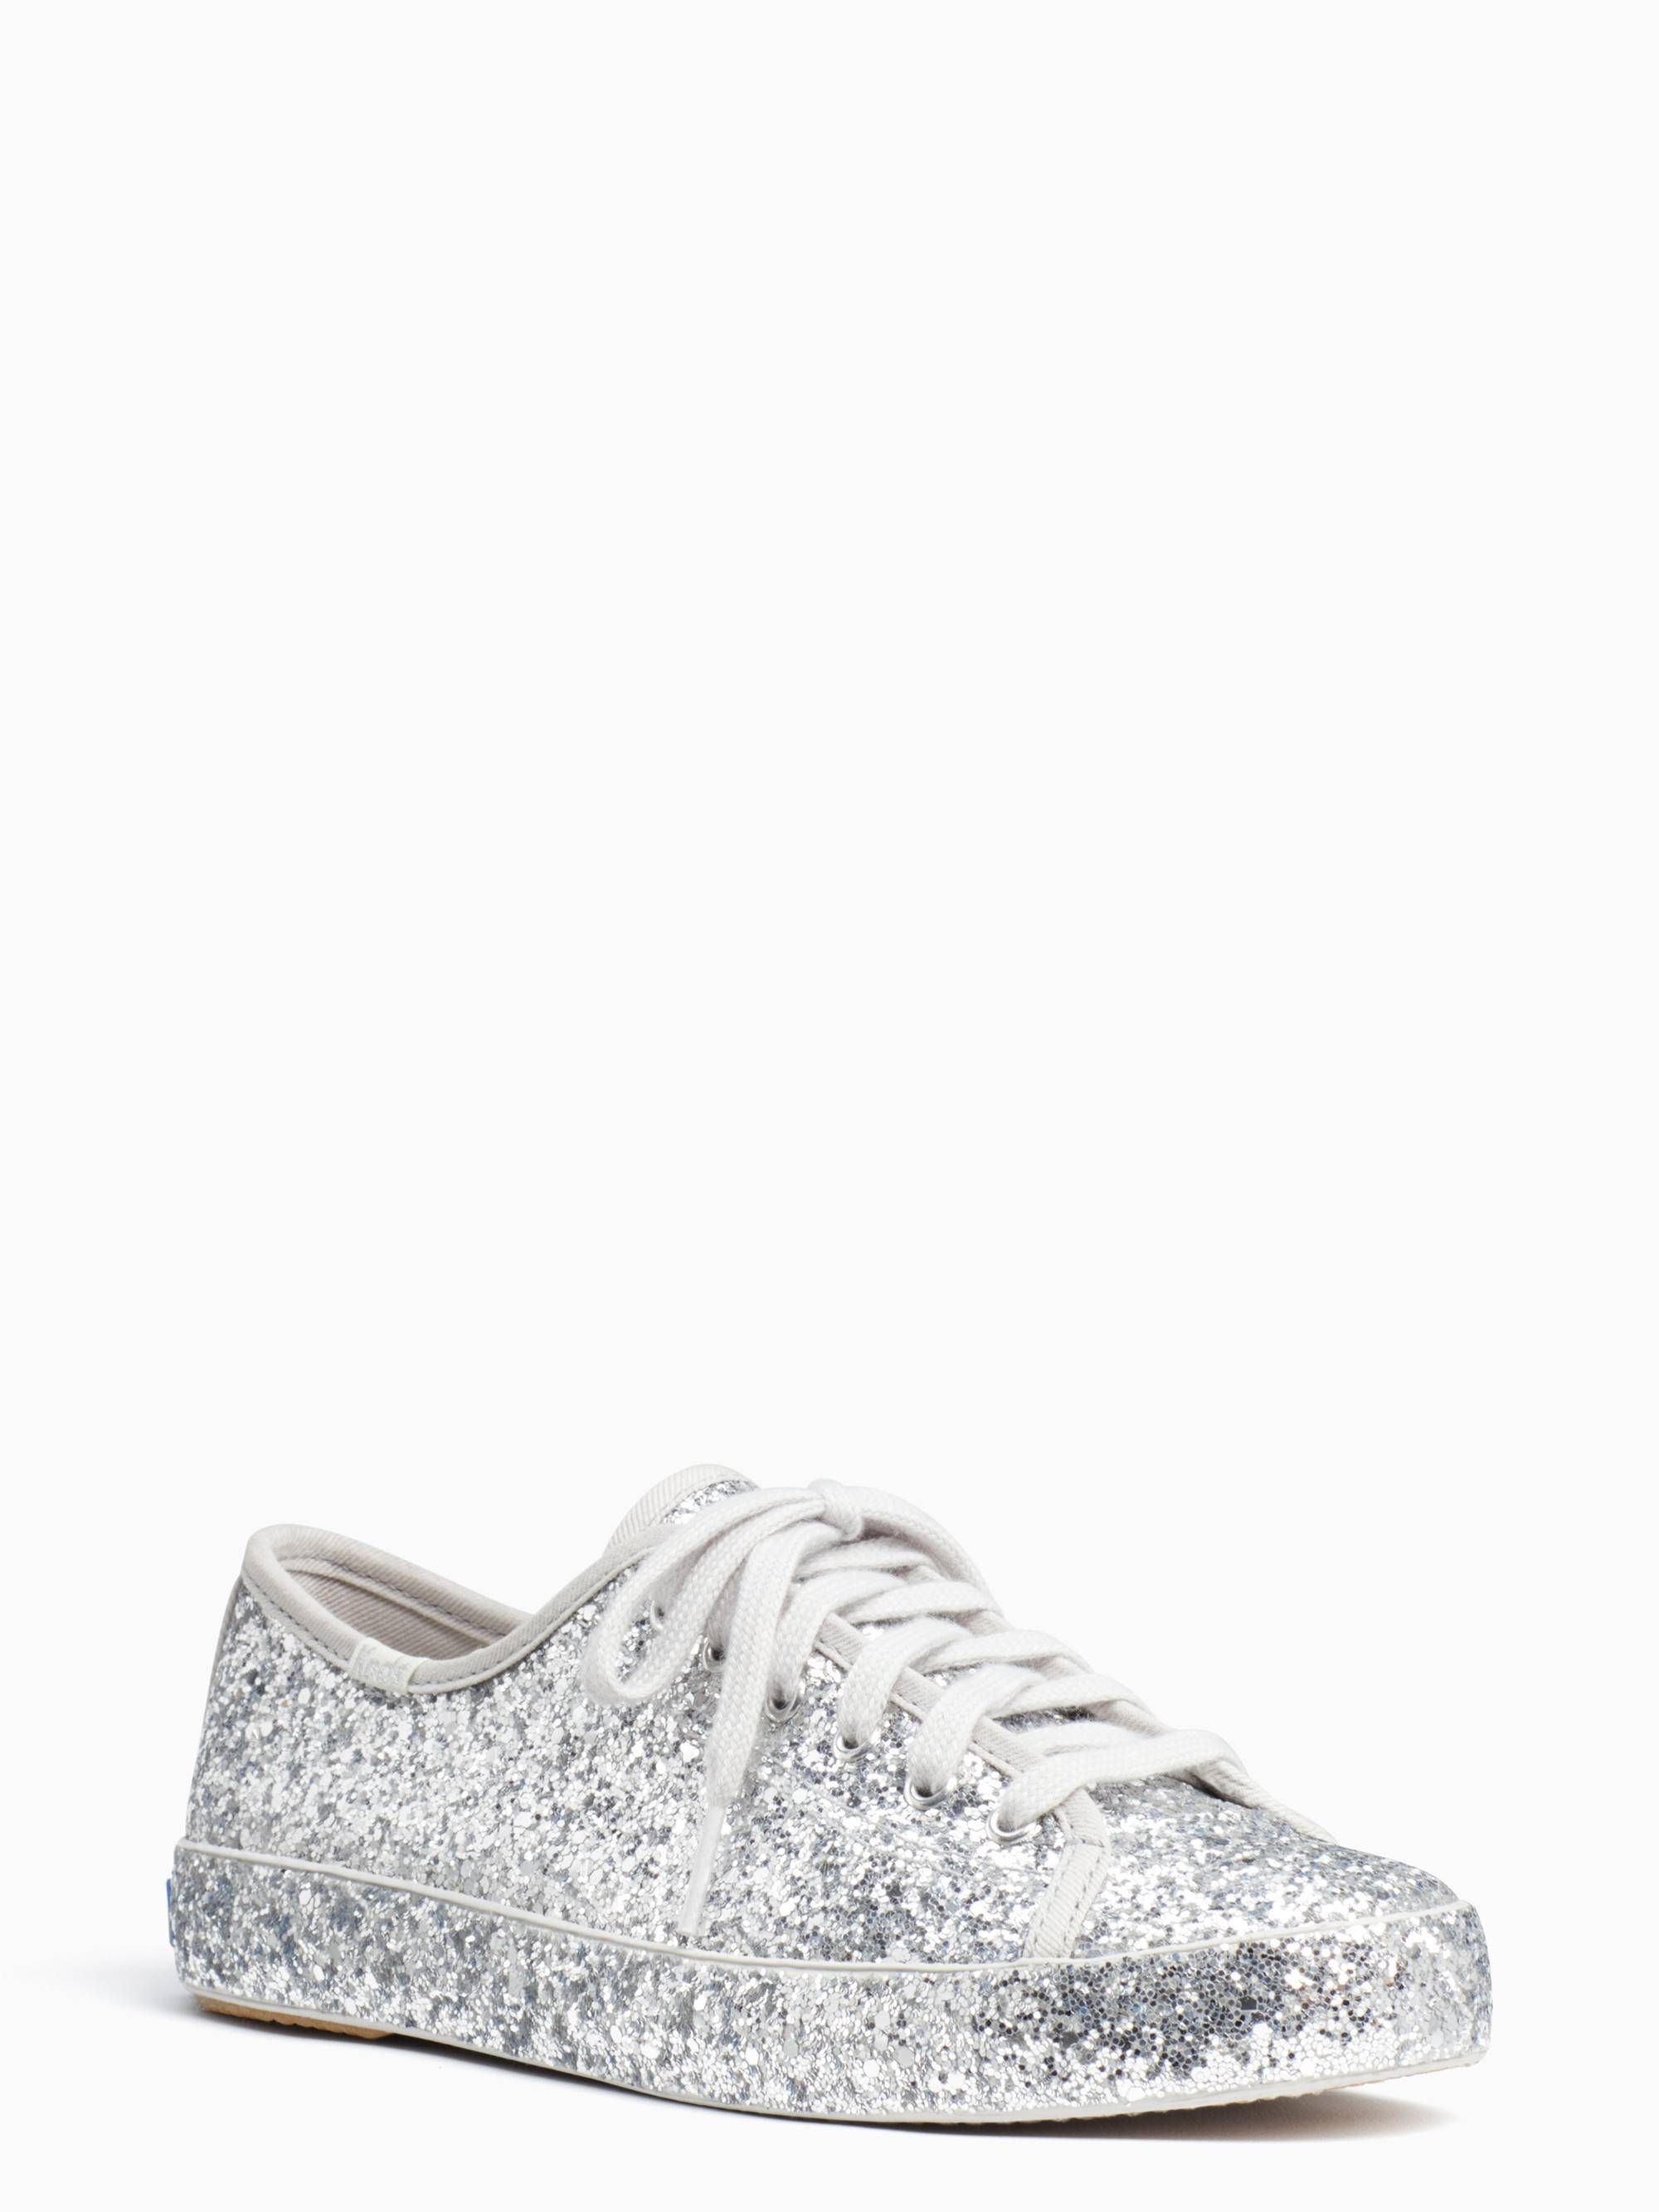 bd653e2945 keds x kate spade new york all-over glitter sneakers ...